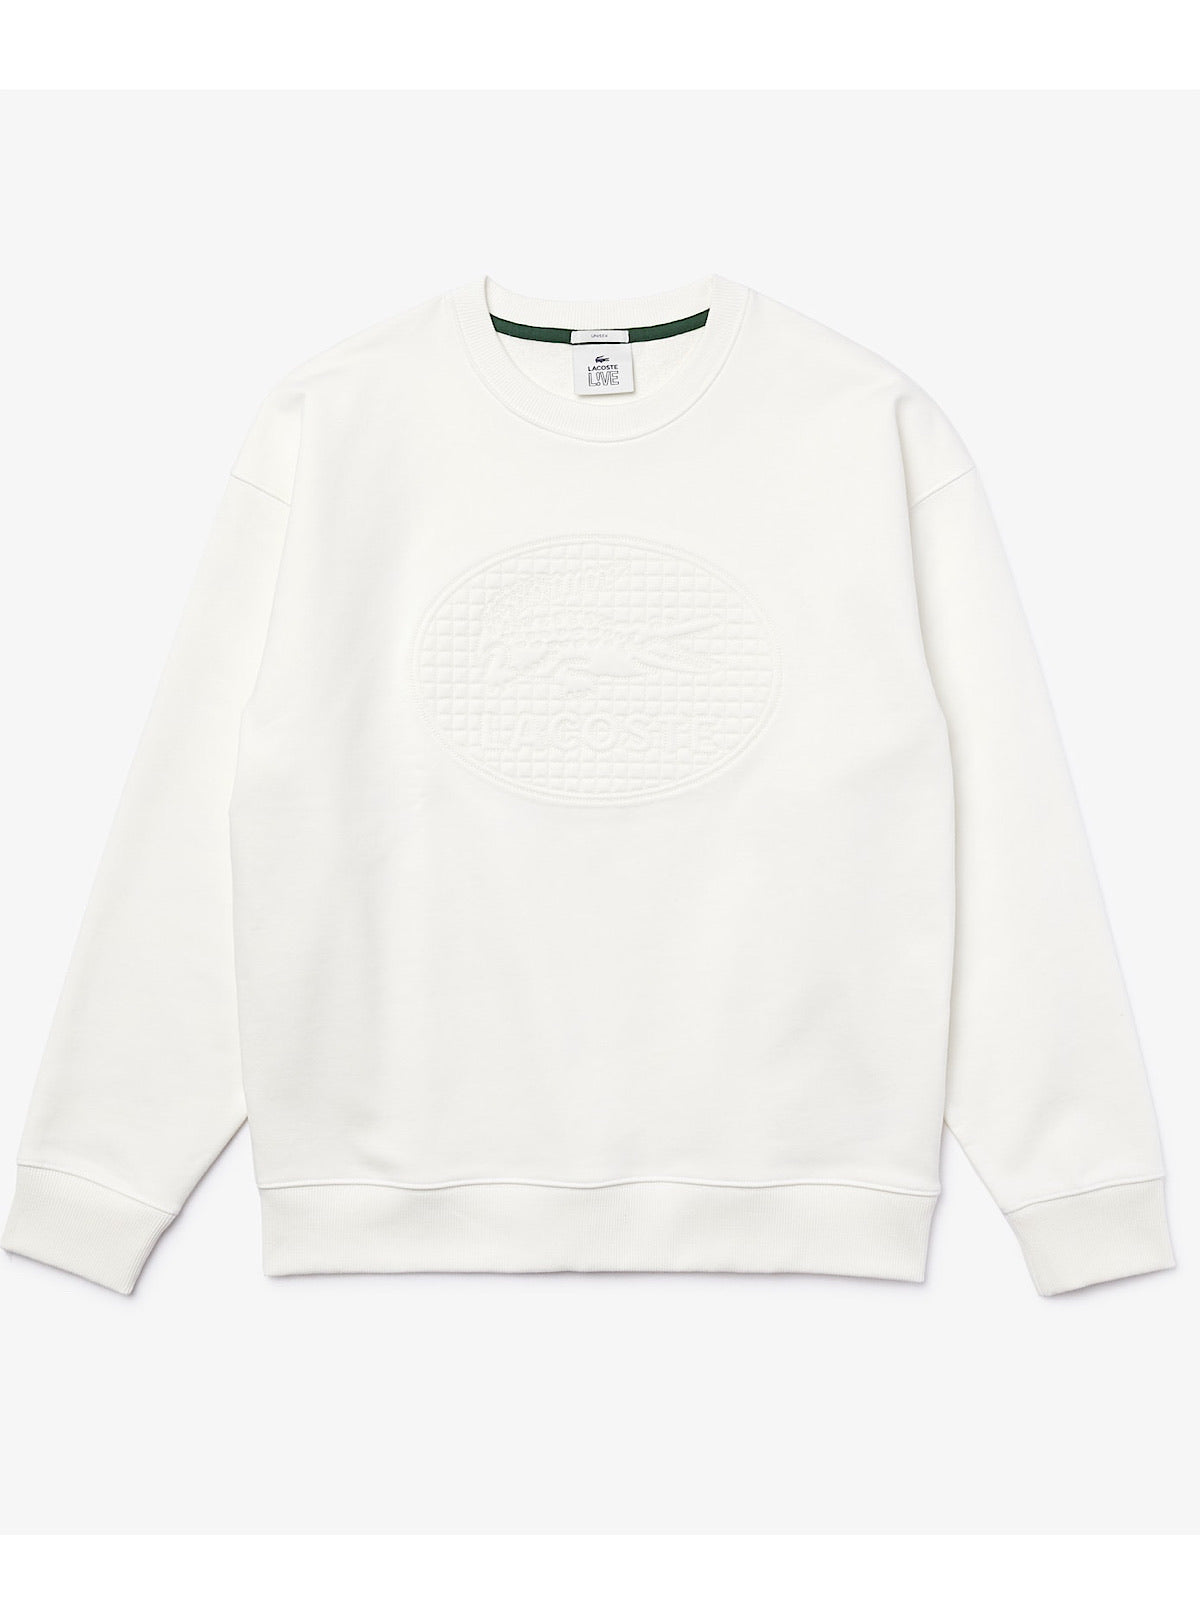 Lacoste Sweater - Loose Fit Crew - White - SH1443